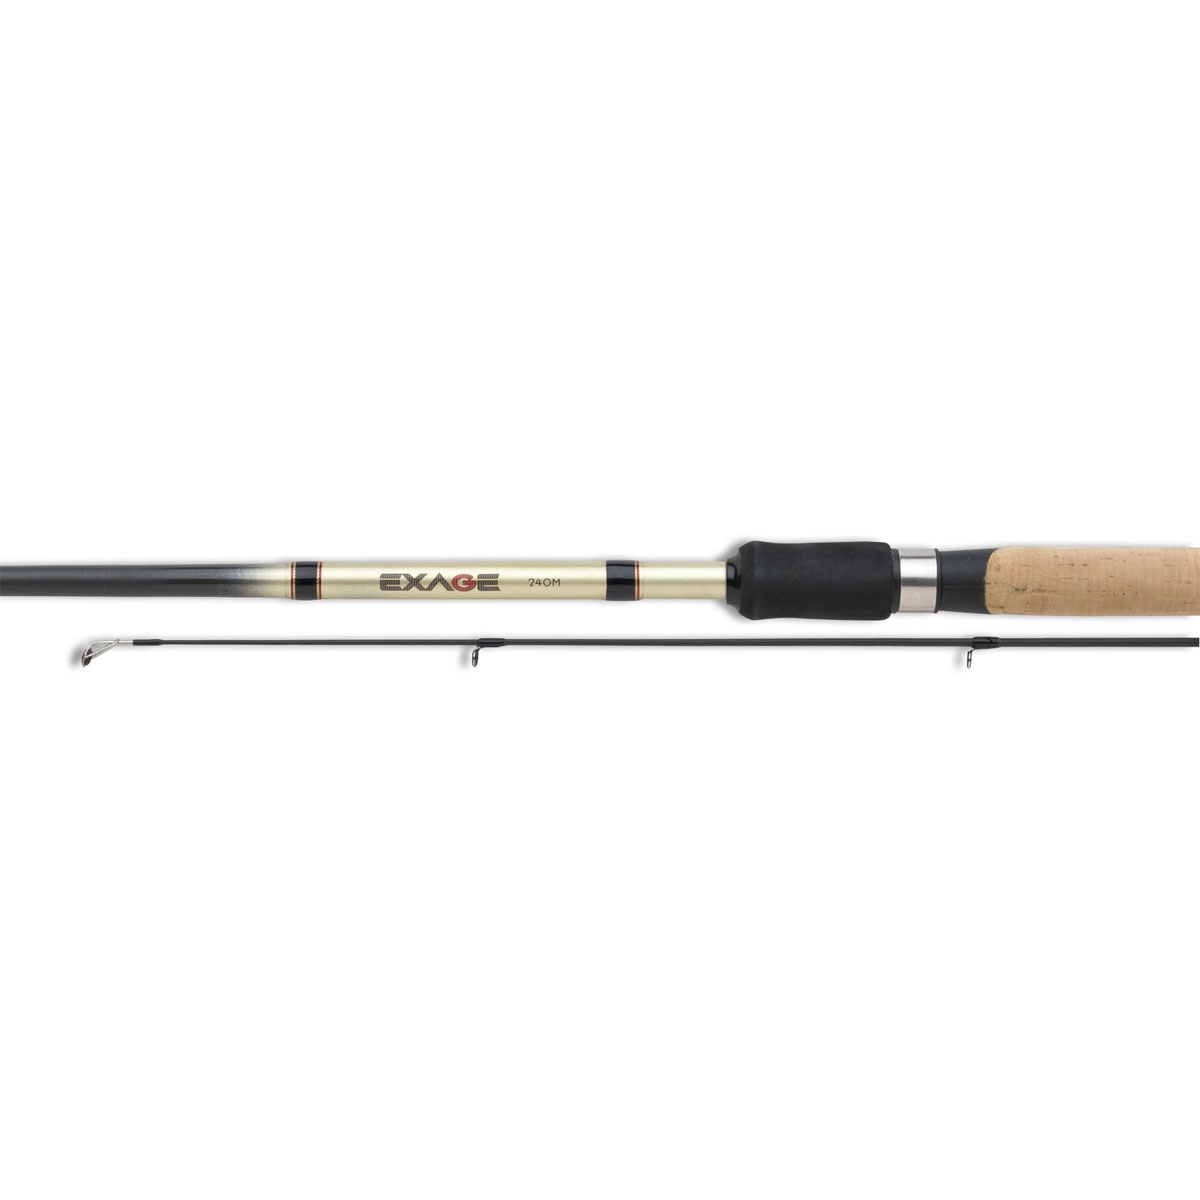 Shimano exage spinning rod 8ft 14 40g for Shimano fishing rods